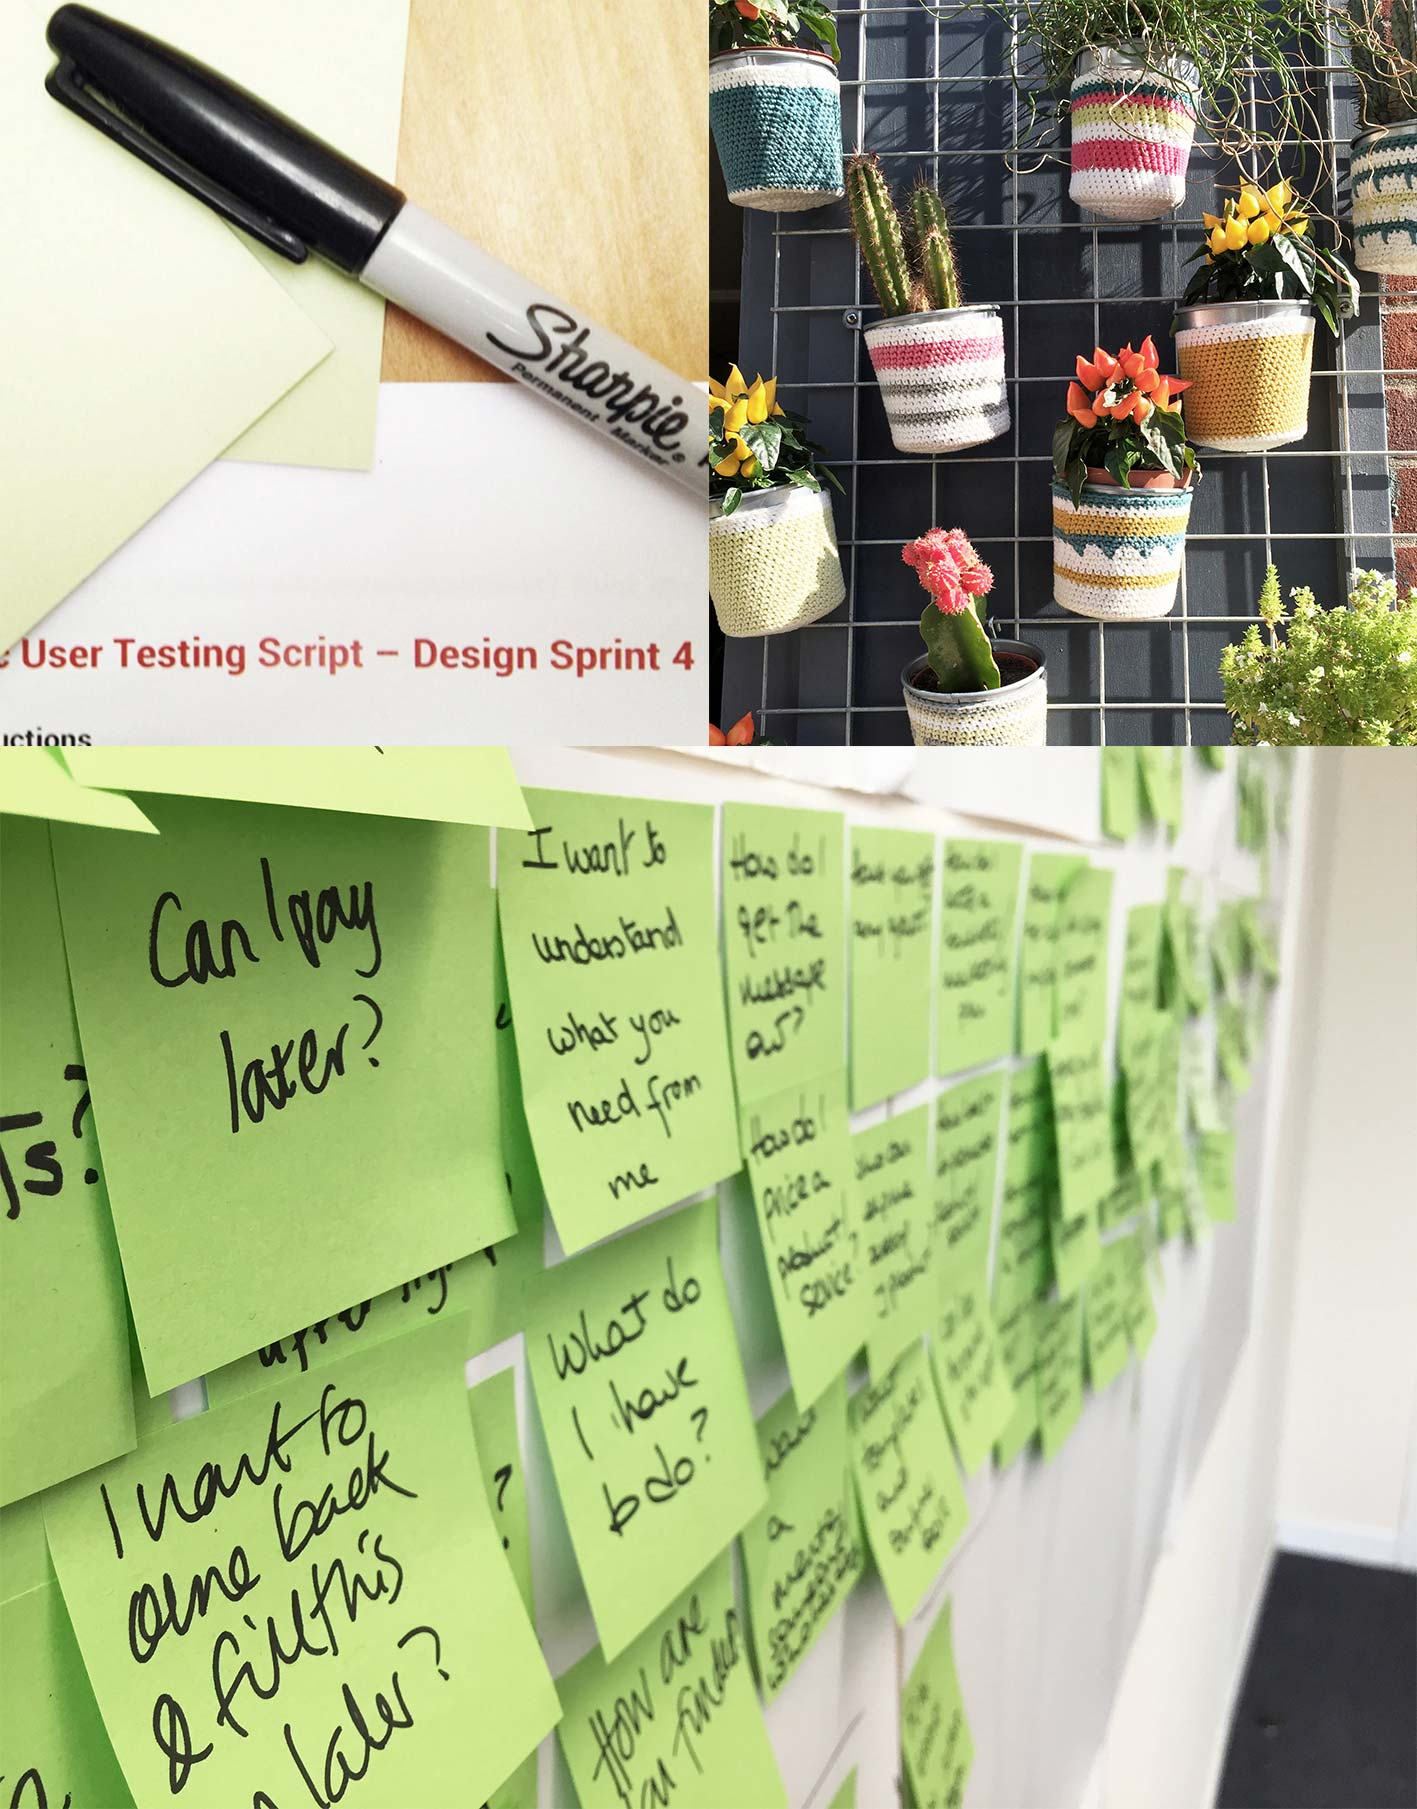 Copy of stickynotes-sketching-userexperience-furthermore